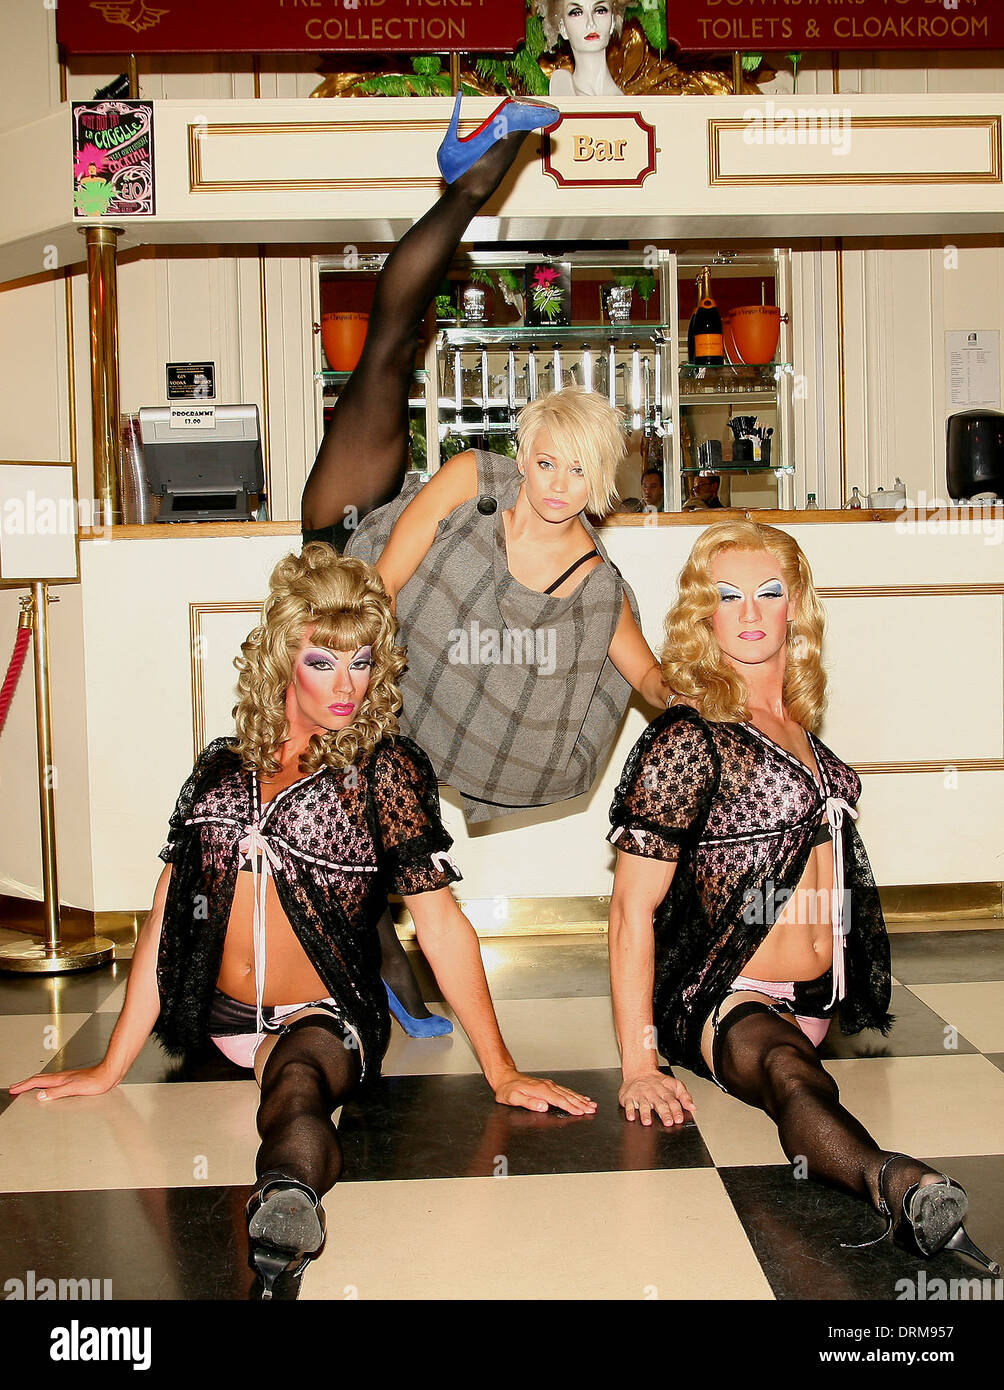 Pussycat Dolls' Kimberly Wyatt (centre) with Cage aux Folles Stock Photo